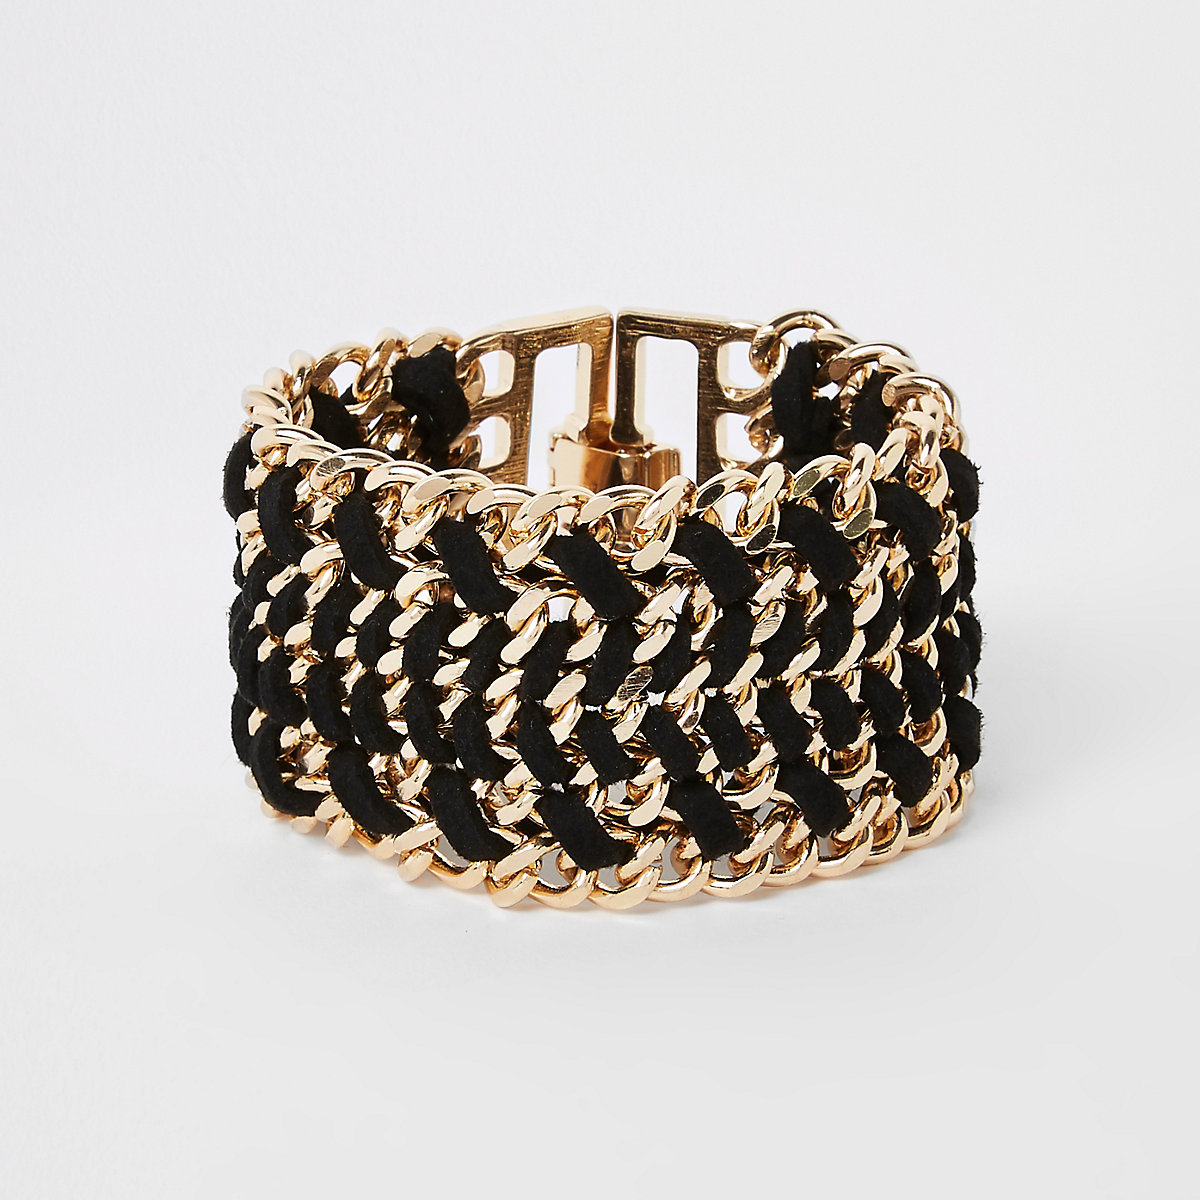 Gold color black thread clasp bracelet